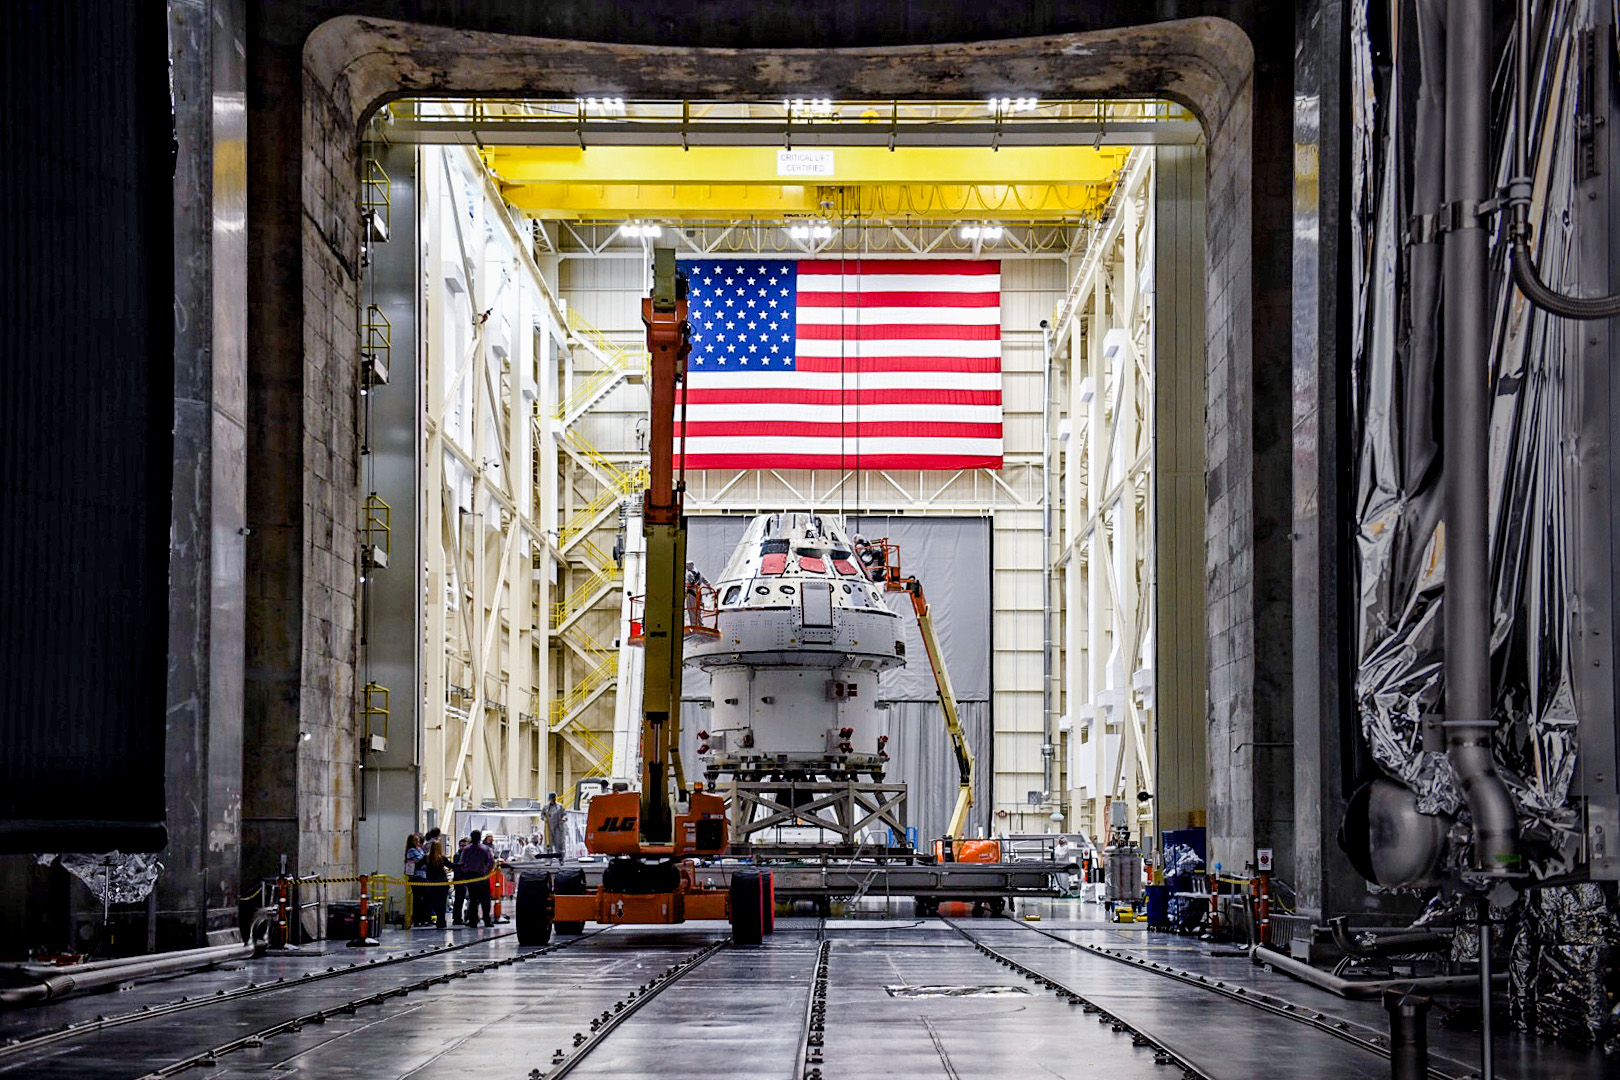 2020-orion-spacecraft-completes-testing.